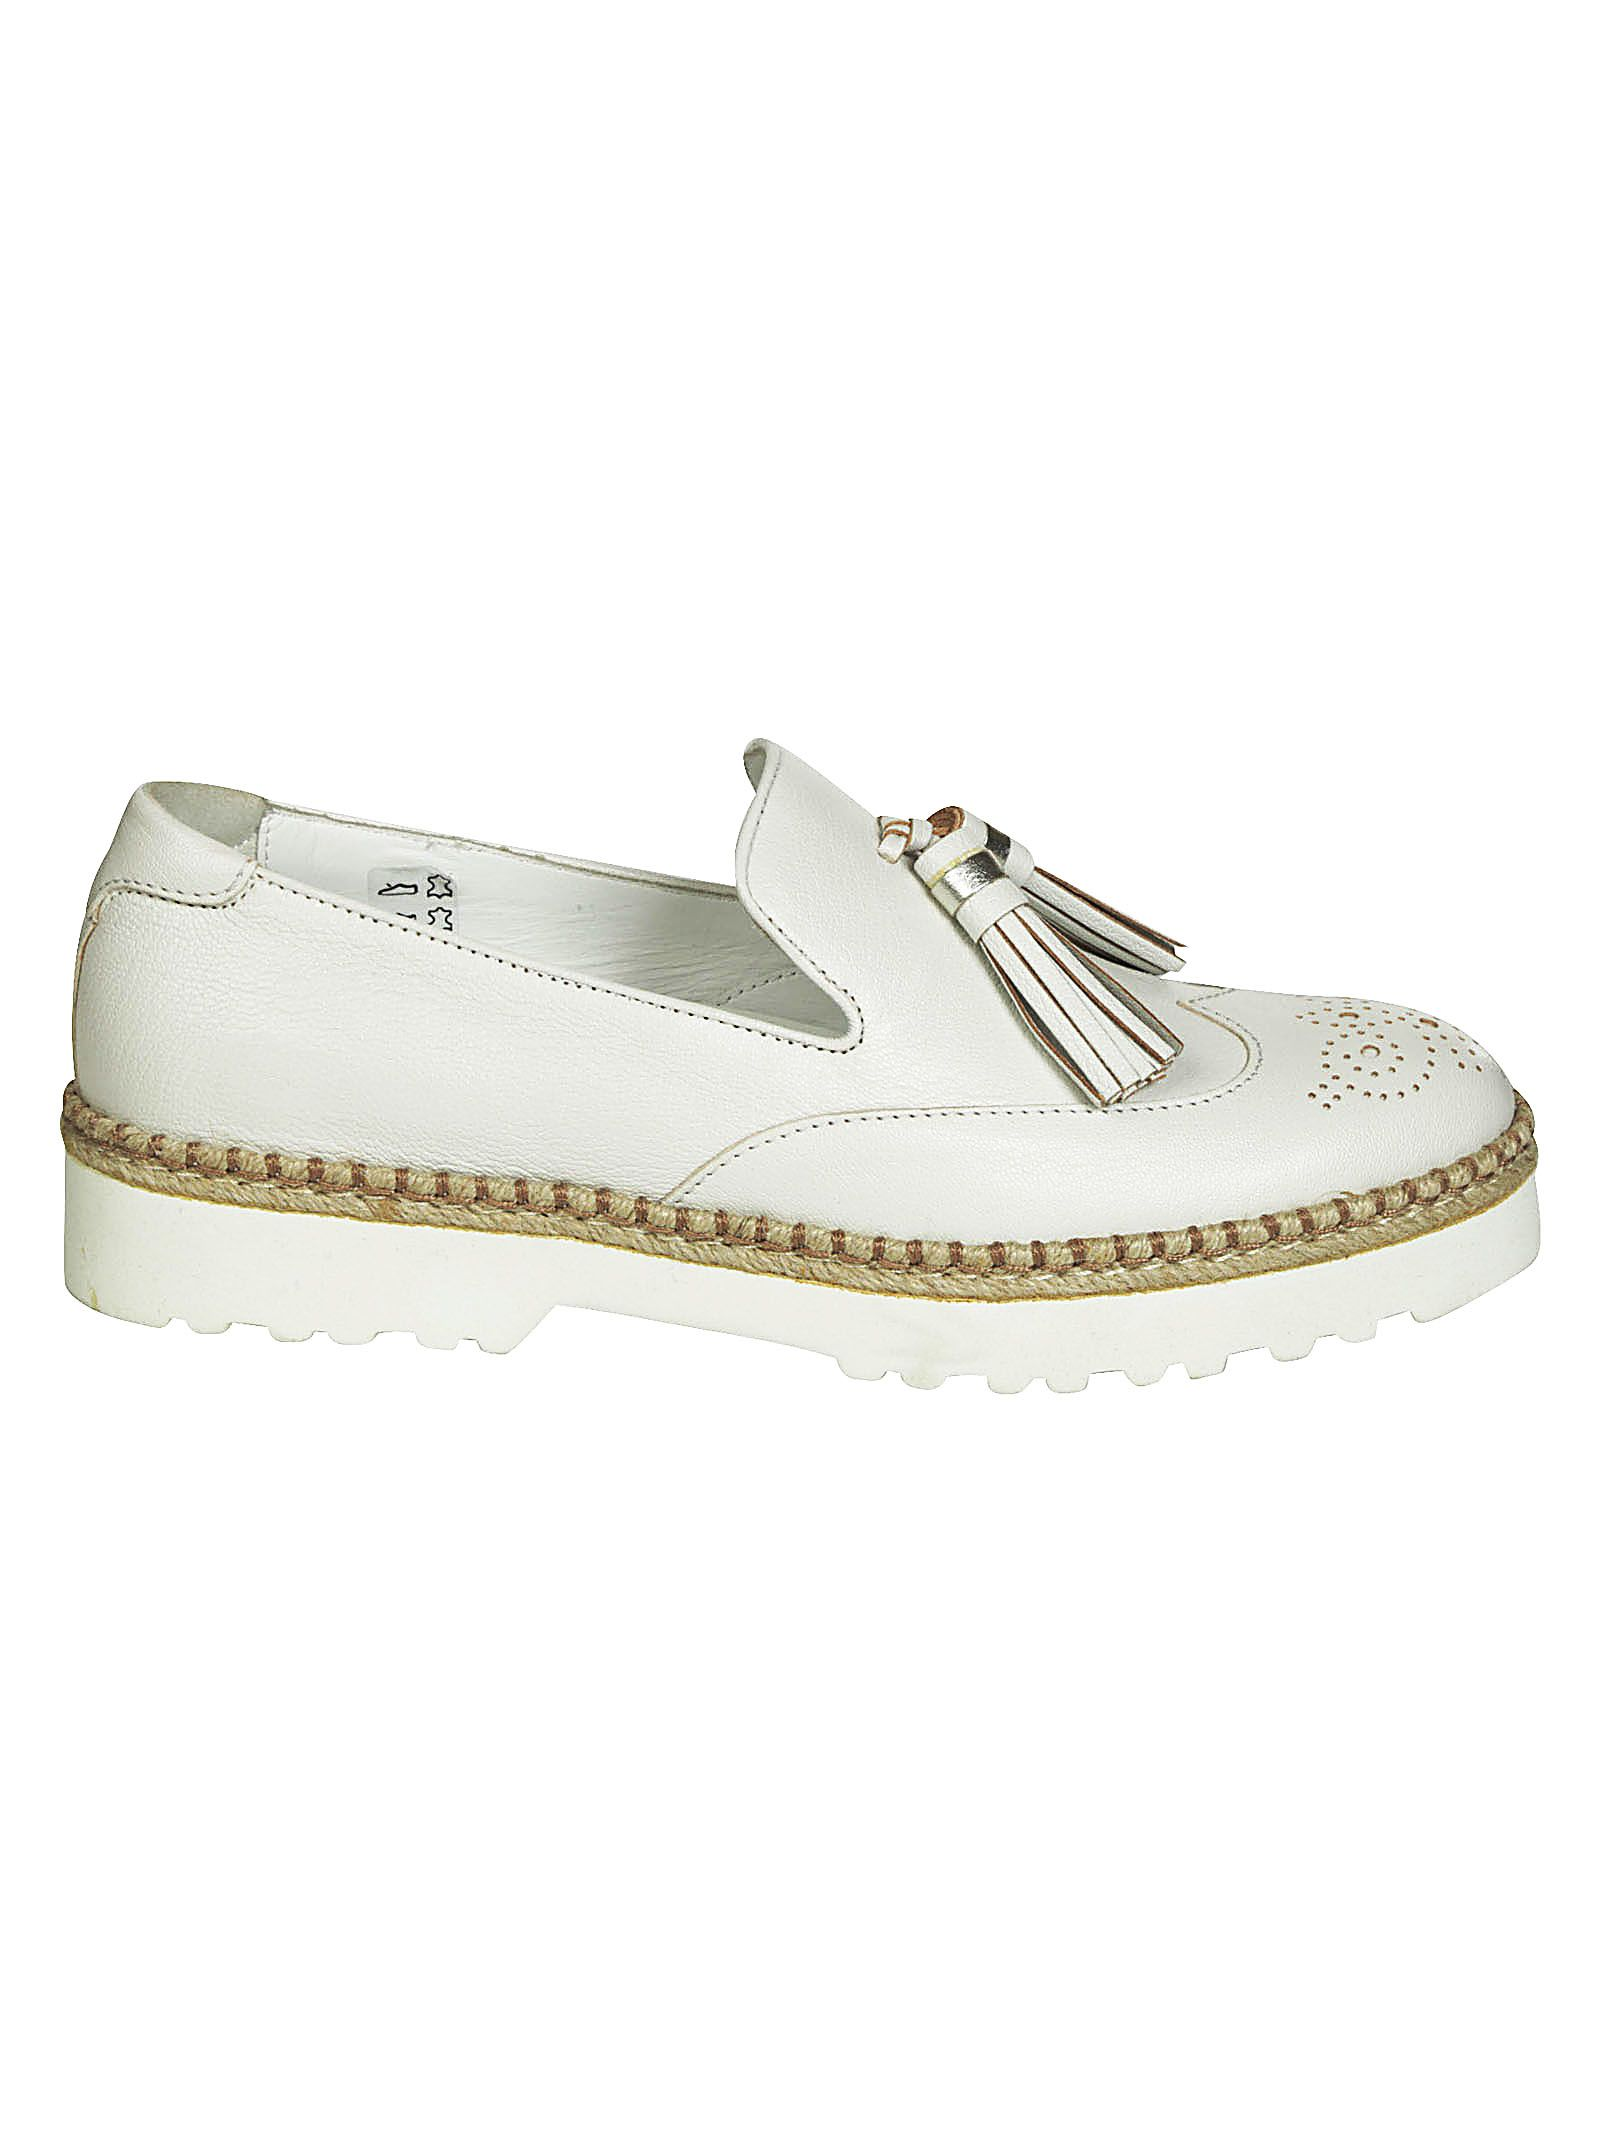 Hogan Slip-on Fringe Tassel Loafers